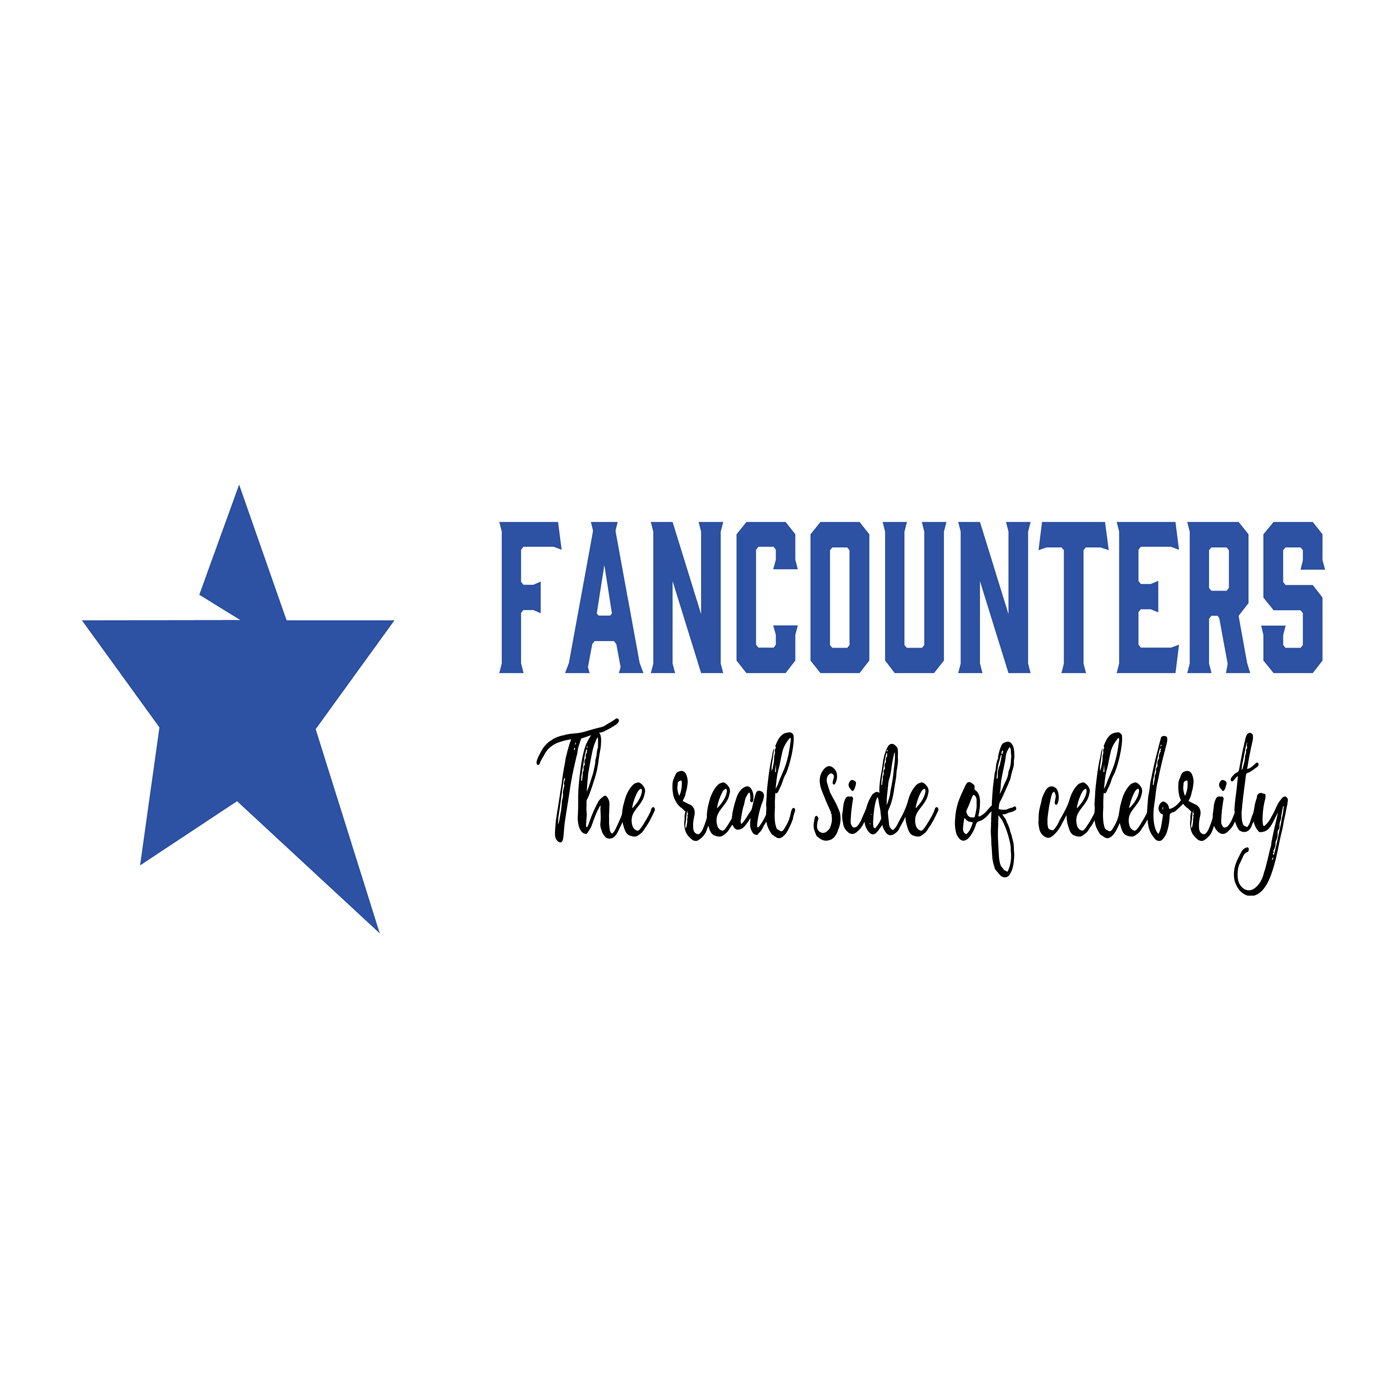 - Each week on Fancounters, Nick and Elizabeth are joined by a celebrity guest to talk about their encounters with fans. Almost everyone has a story about the time they ran into a celebrity, but what is that encounter like for the star? On Fancounters, you'll hear exclusive celebrity stories about working in Hollywood and what it takes to succeed. Released on Friday mornings, Fancounters is a perfect way to start your weekend!